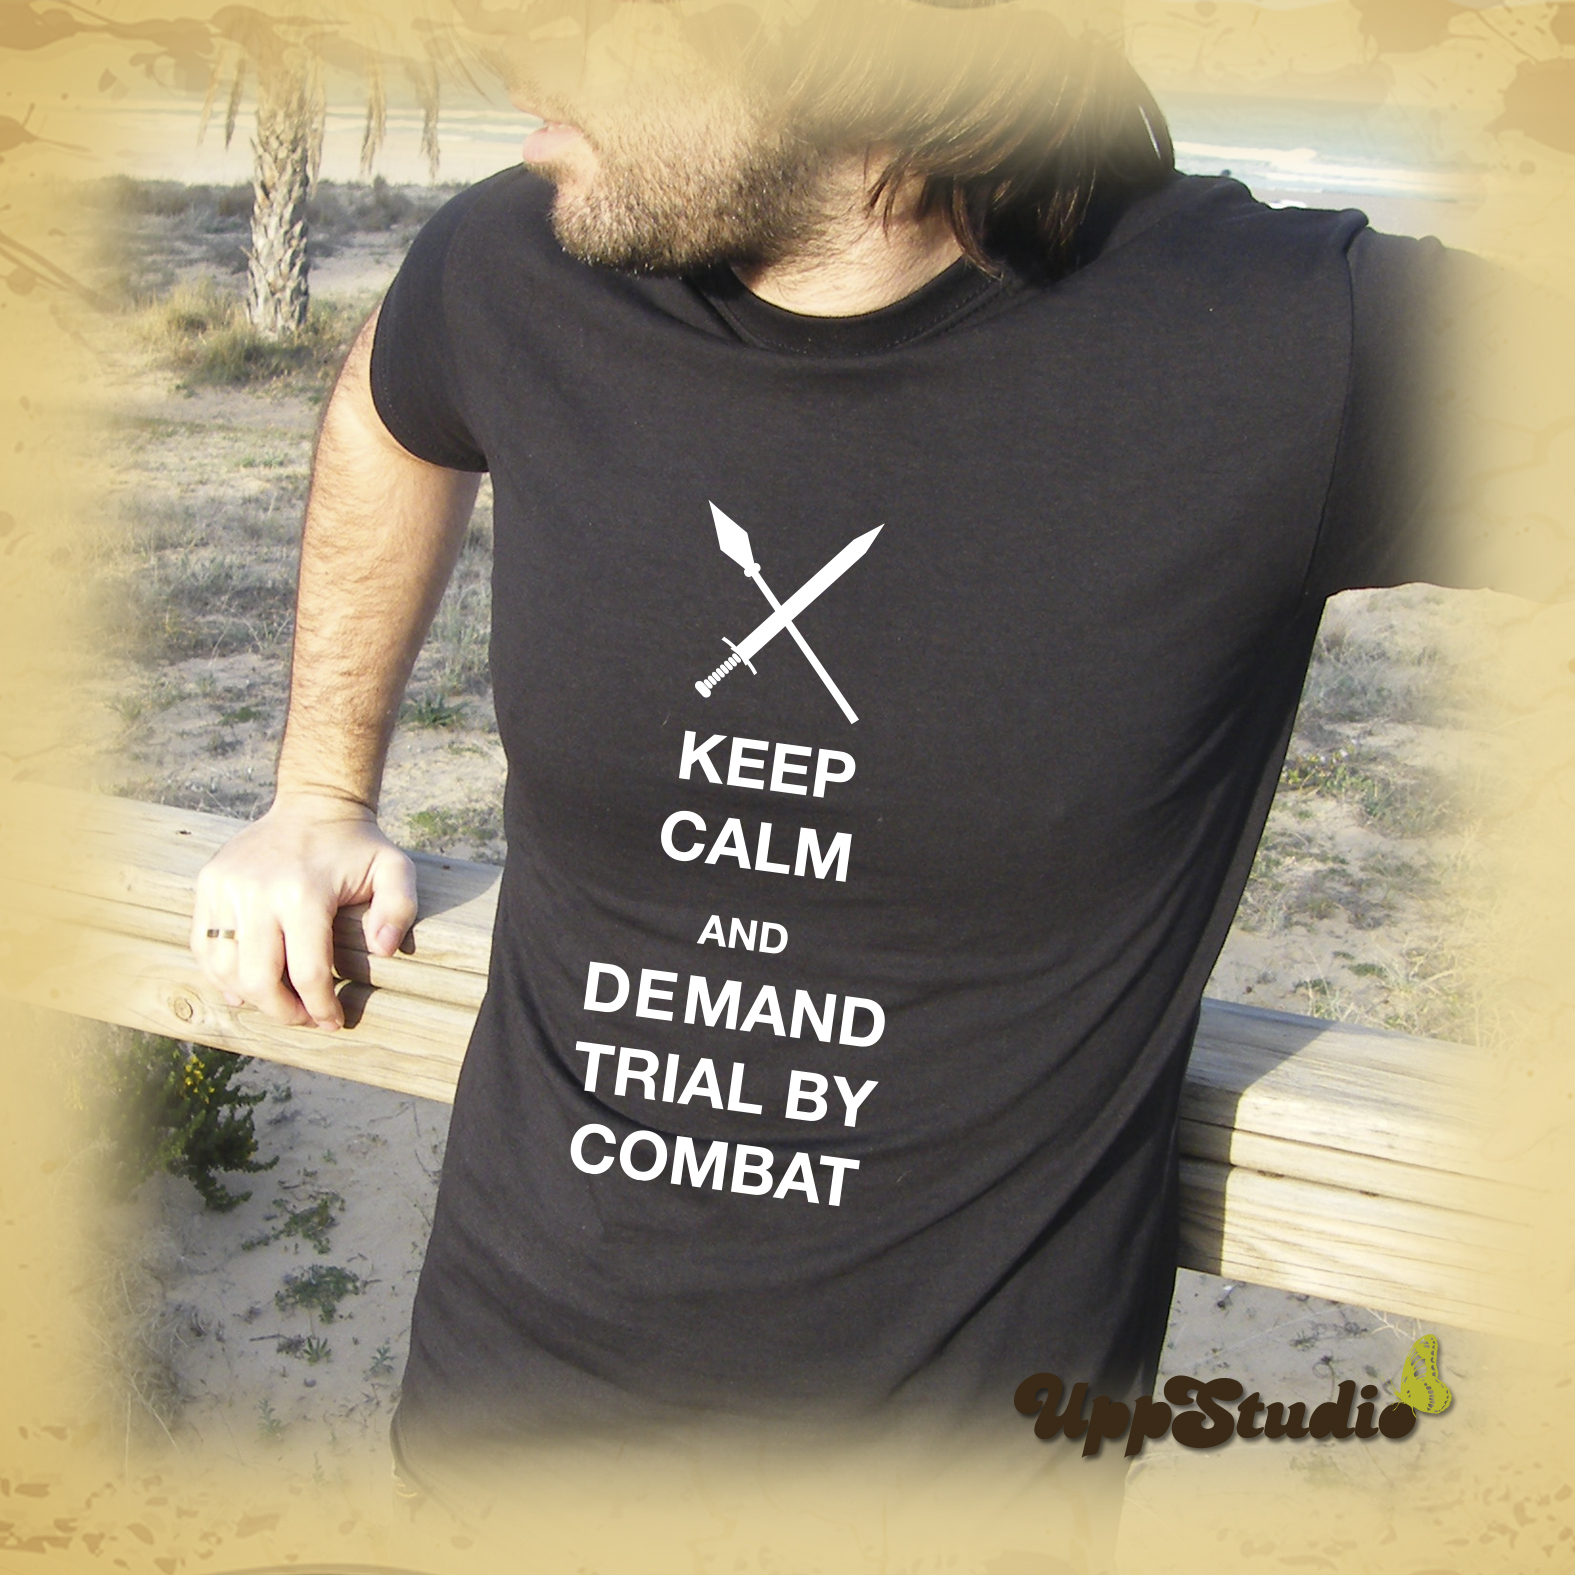 http://www.uppstudio.com/Camiseta-Keep-Calm-And-Demand-Trial-By-Combat?utm_source=SPEC&utm_medium=Blog&utm_campaign=GOTSPEC&utm_term=GOTSPEC